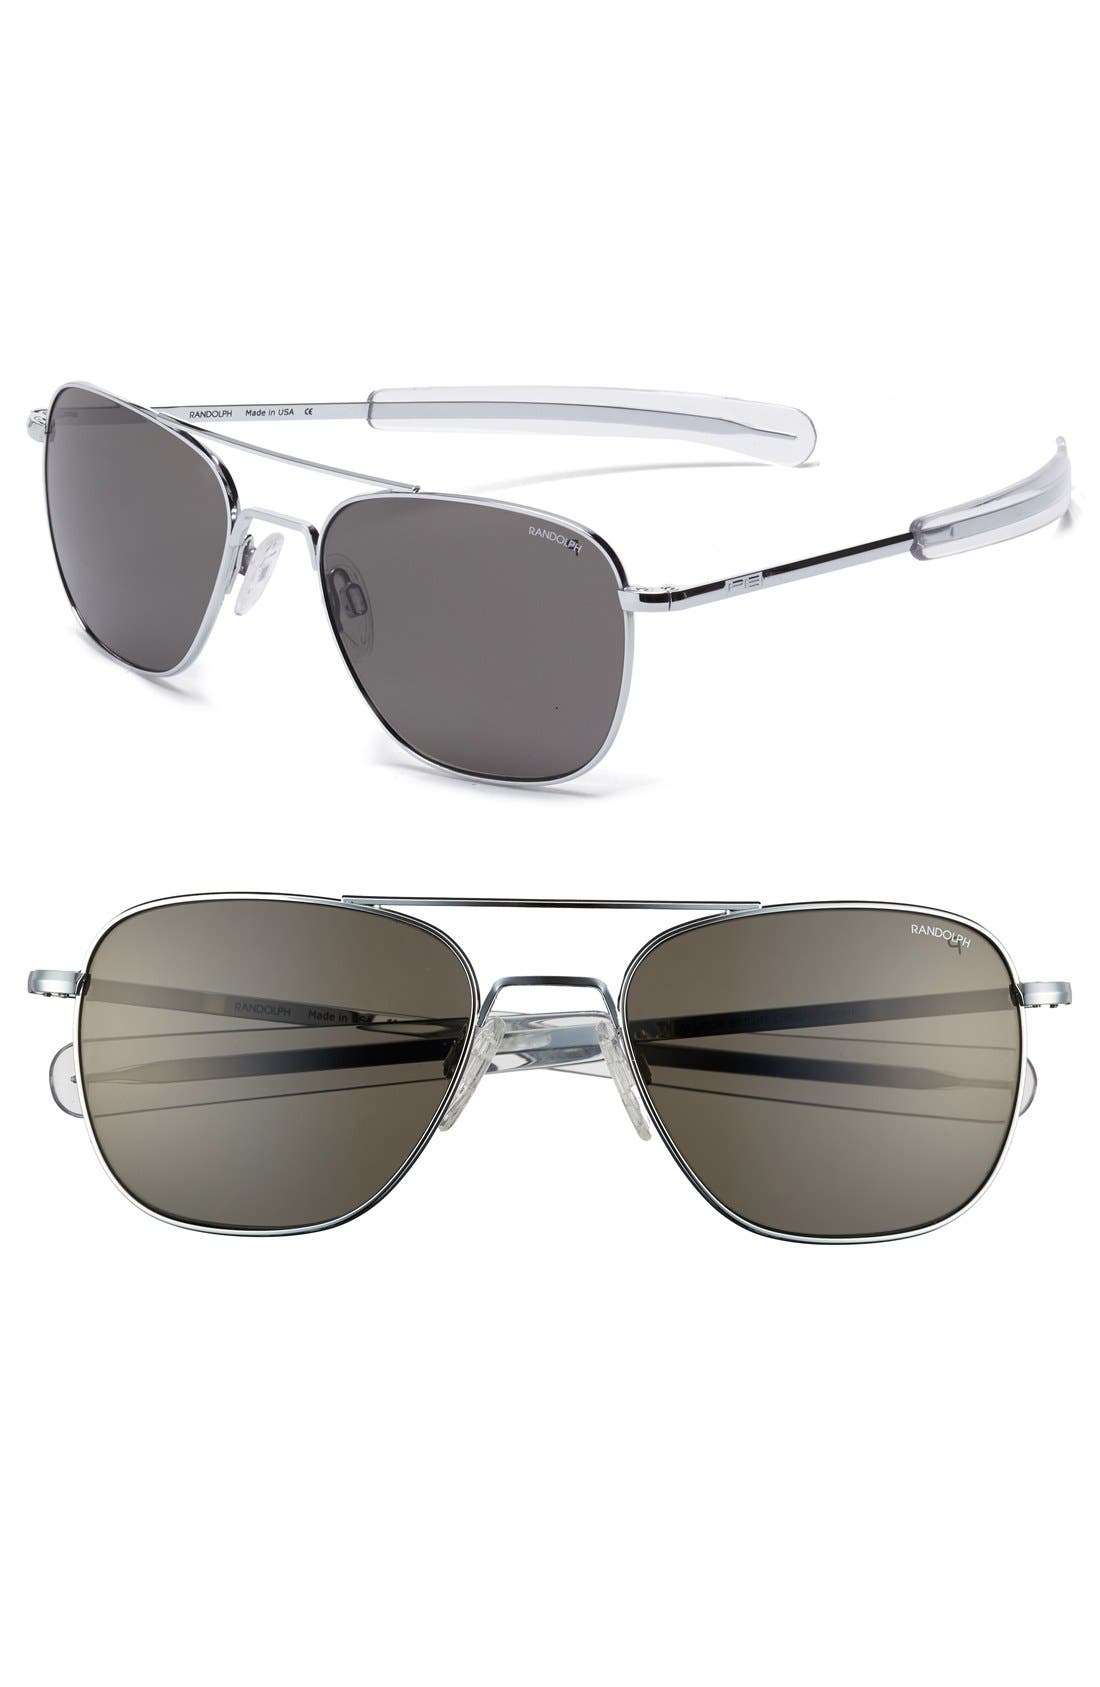 55mm Polarized Aviator Sunglasses,                             Main thumbnail 1, color,                             Bright Chrome/ Grey